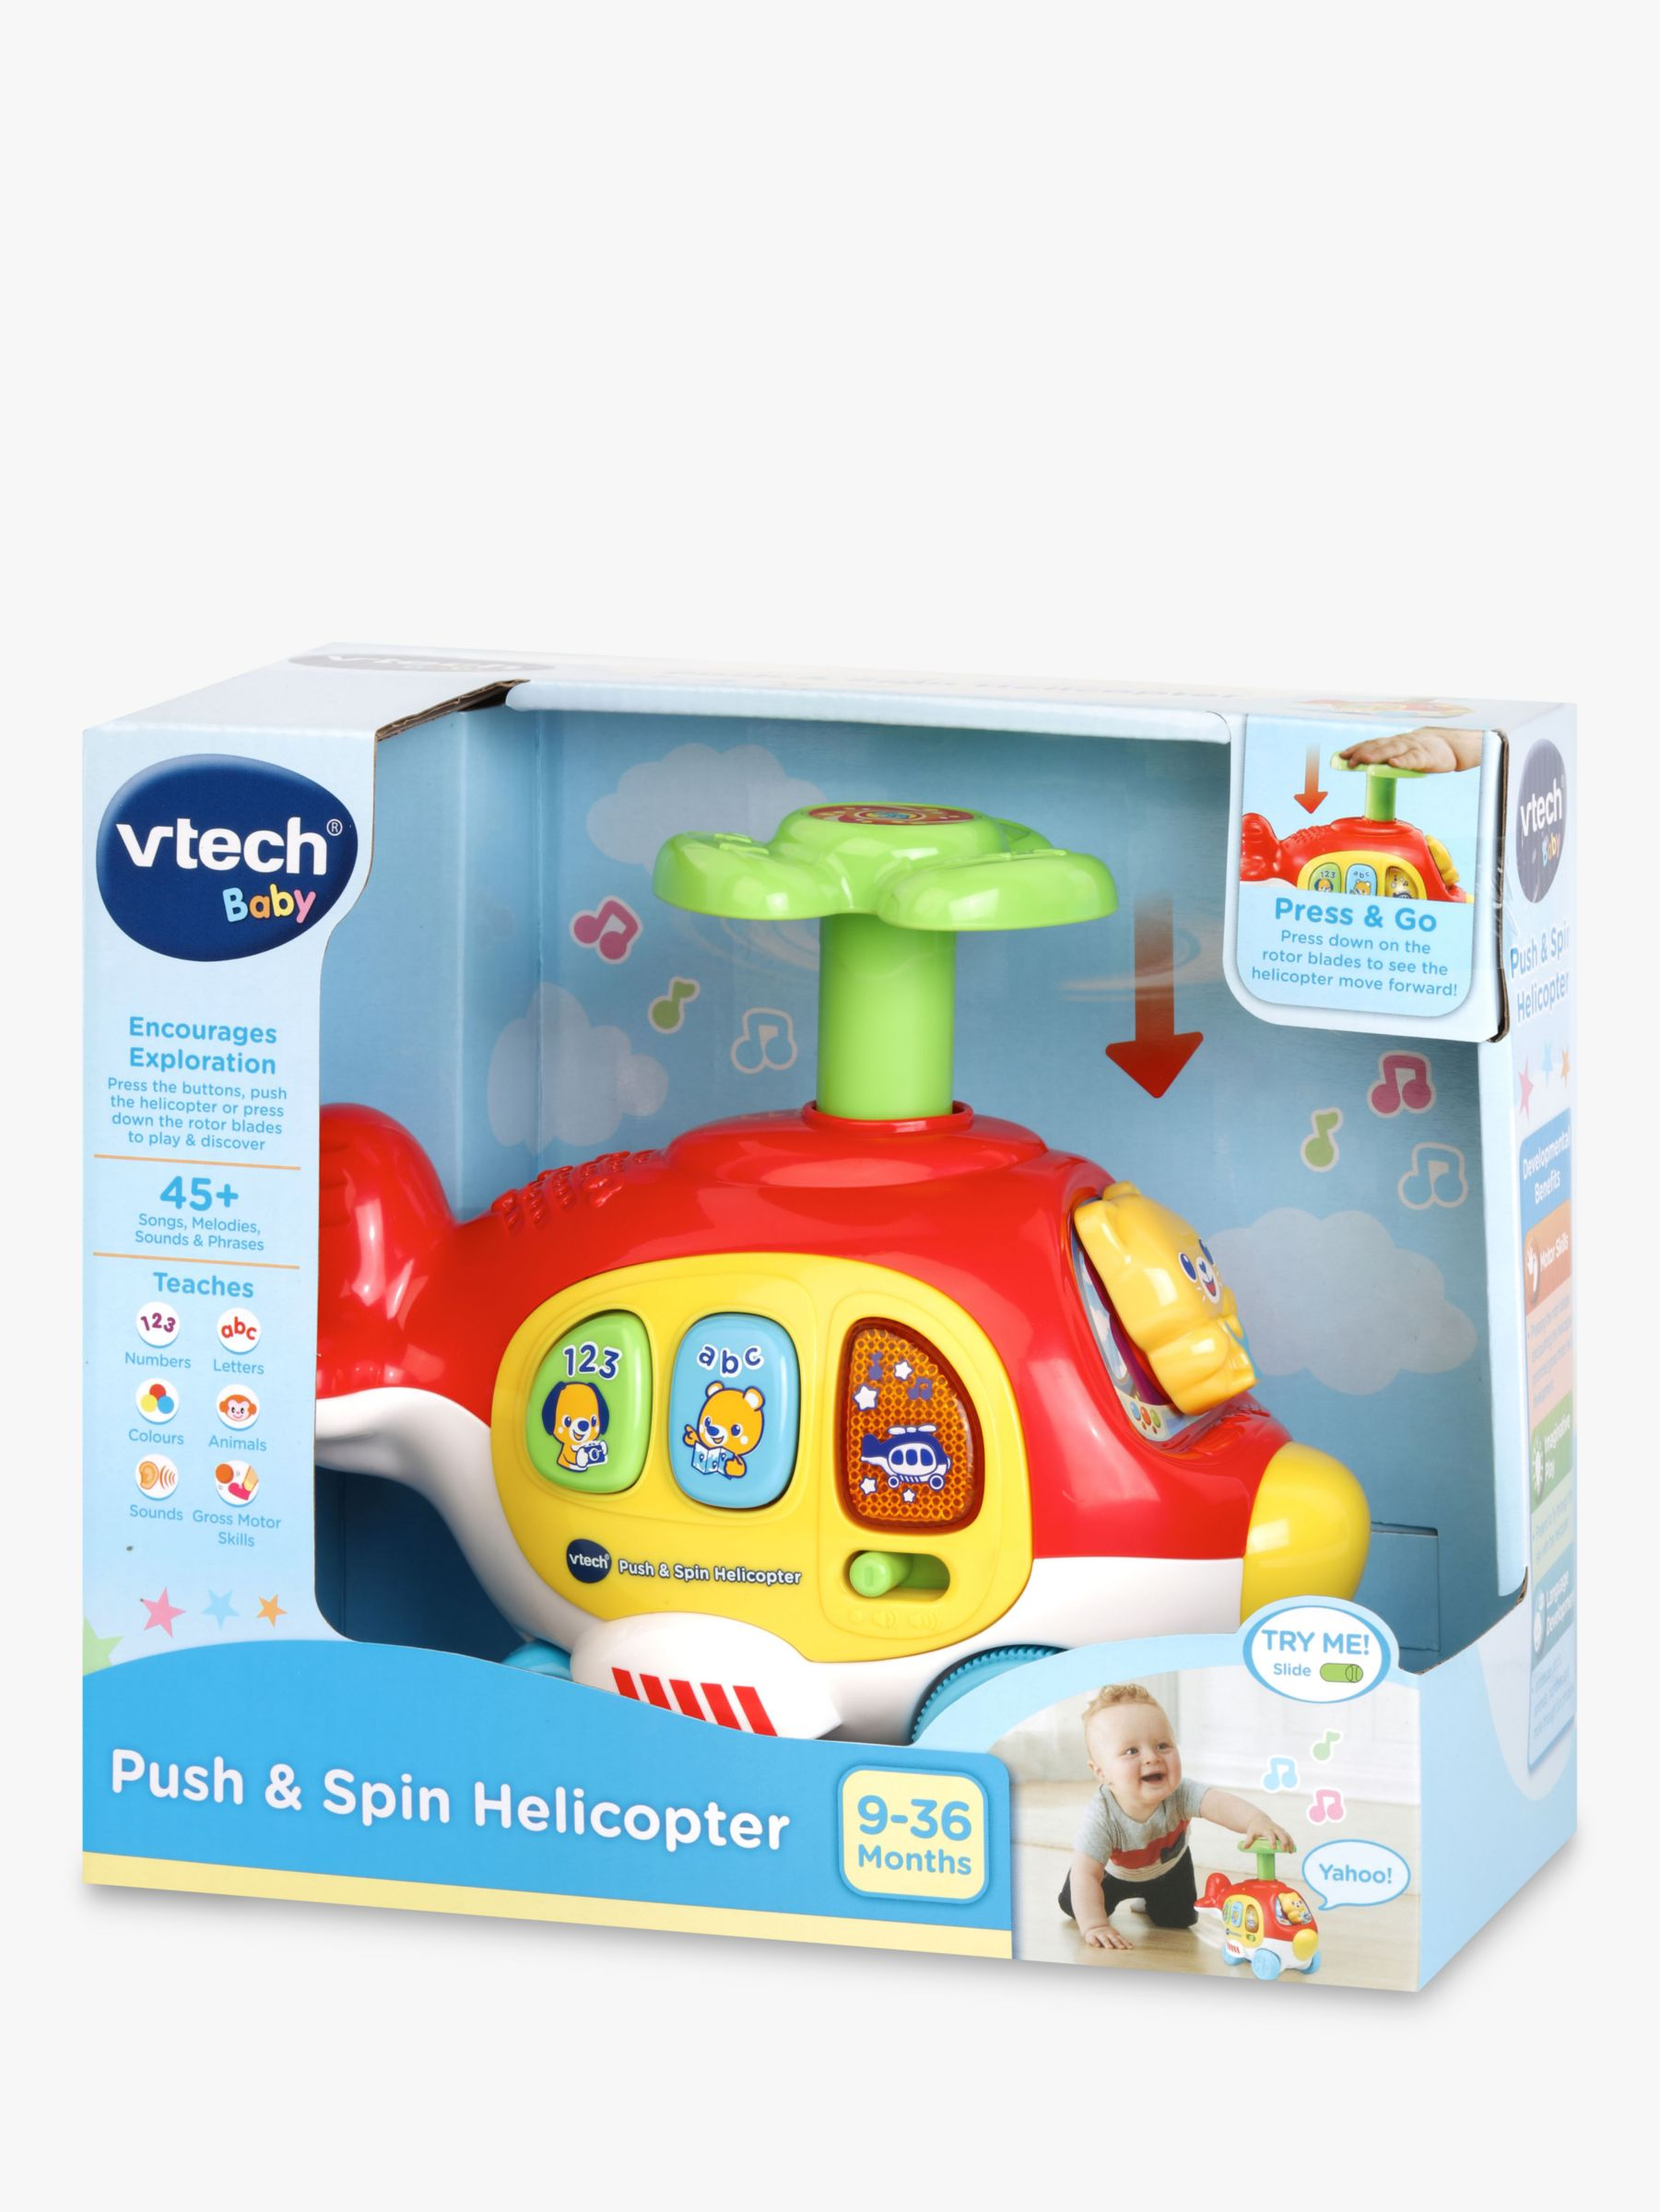 Vtech VTech Baby Push and Spin Helicopter